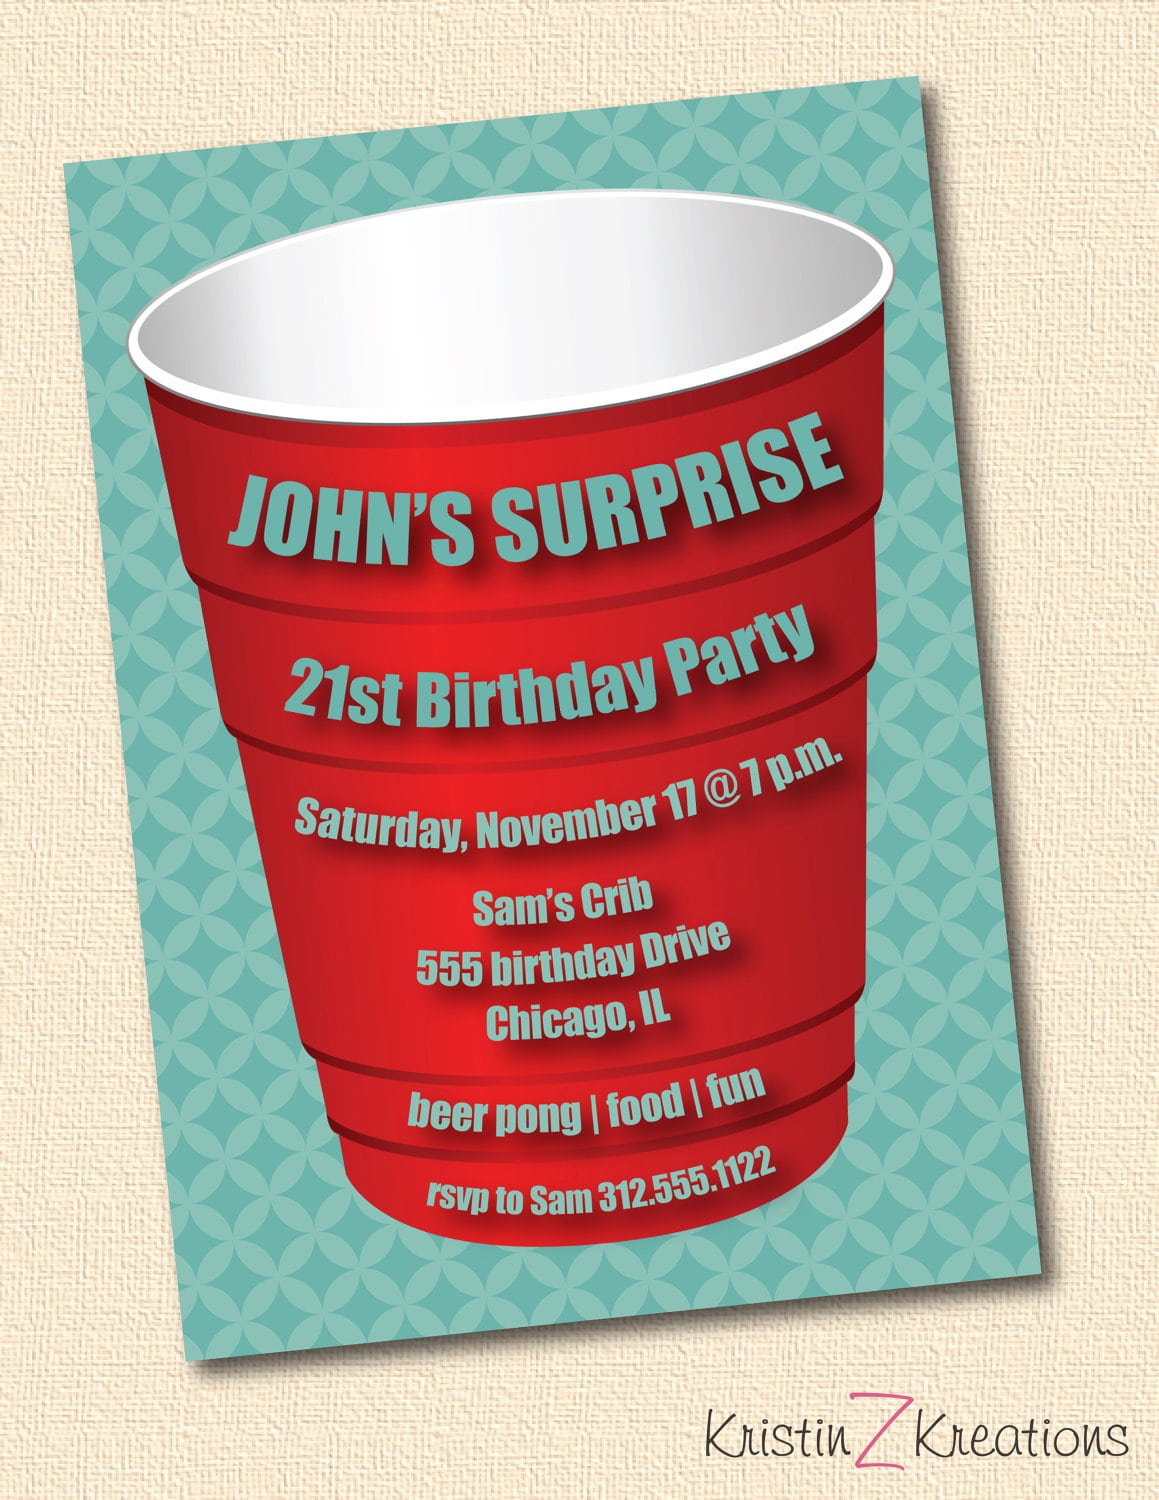 Red Solo Cup Party Invitations